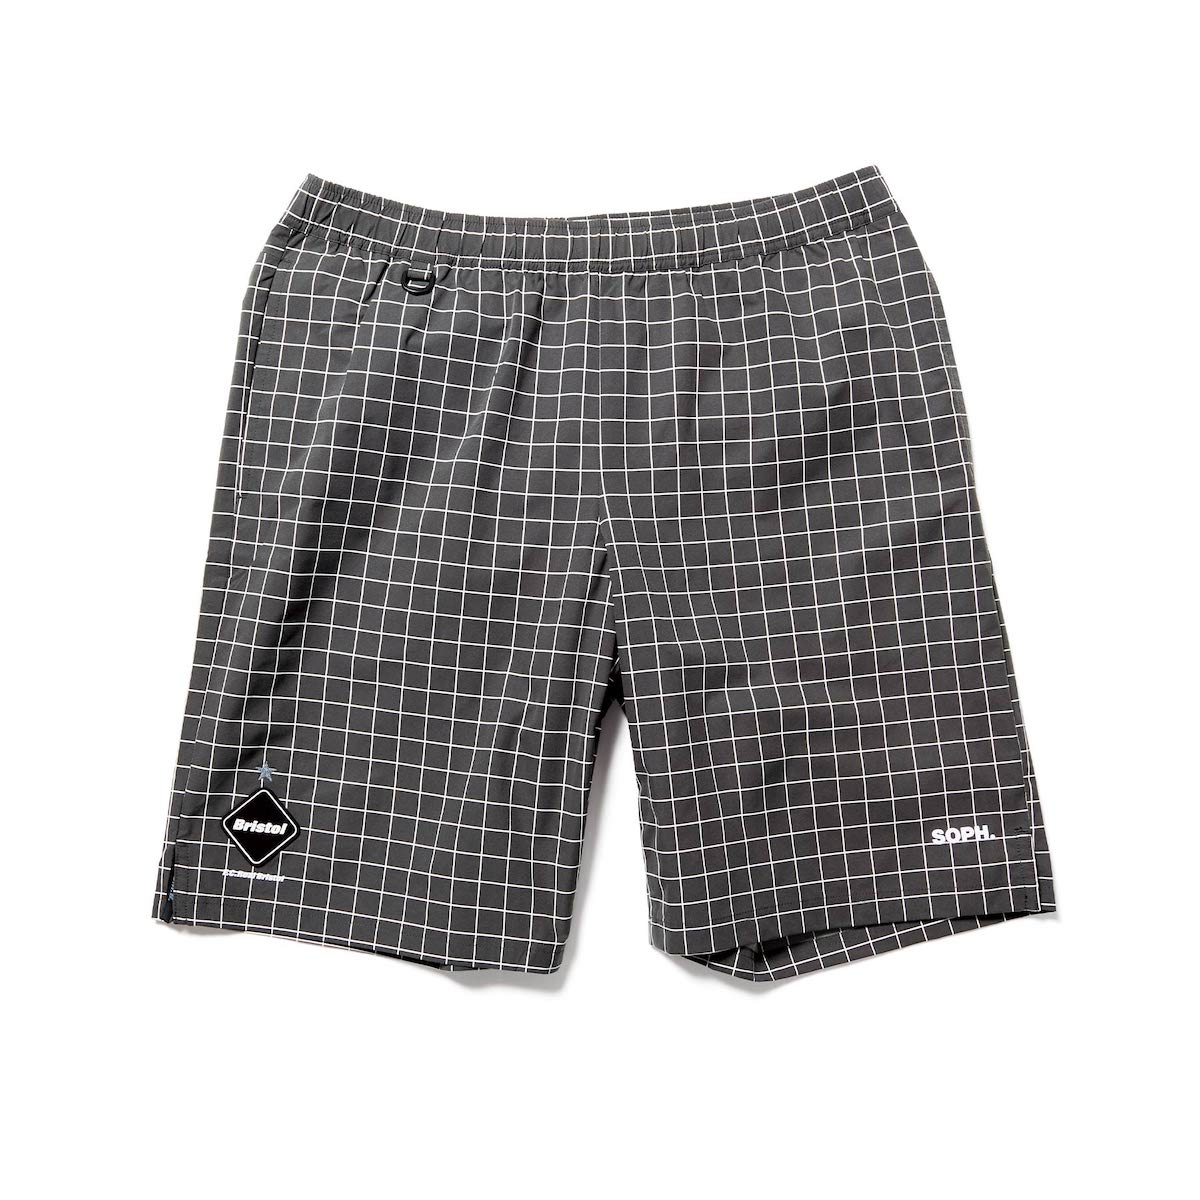 F.C.Real Bristol / PRACTICE SHORTS (Gray)